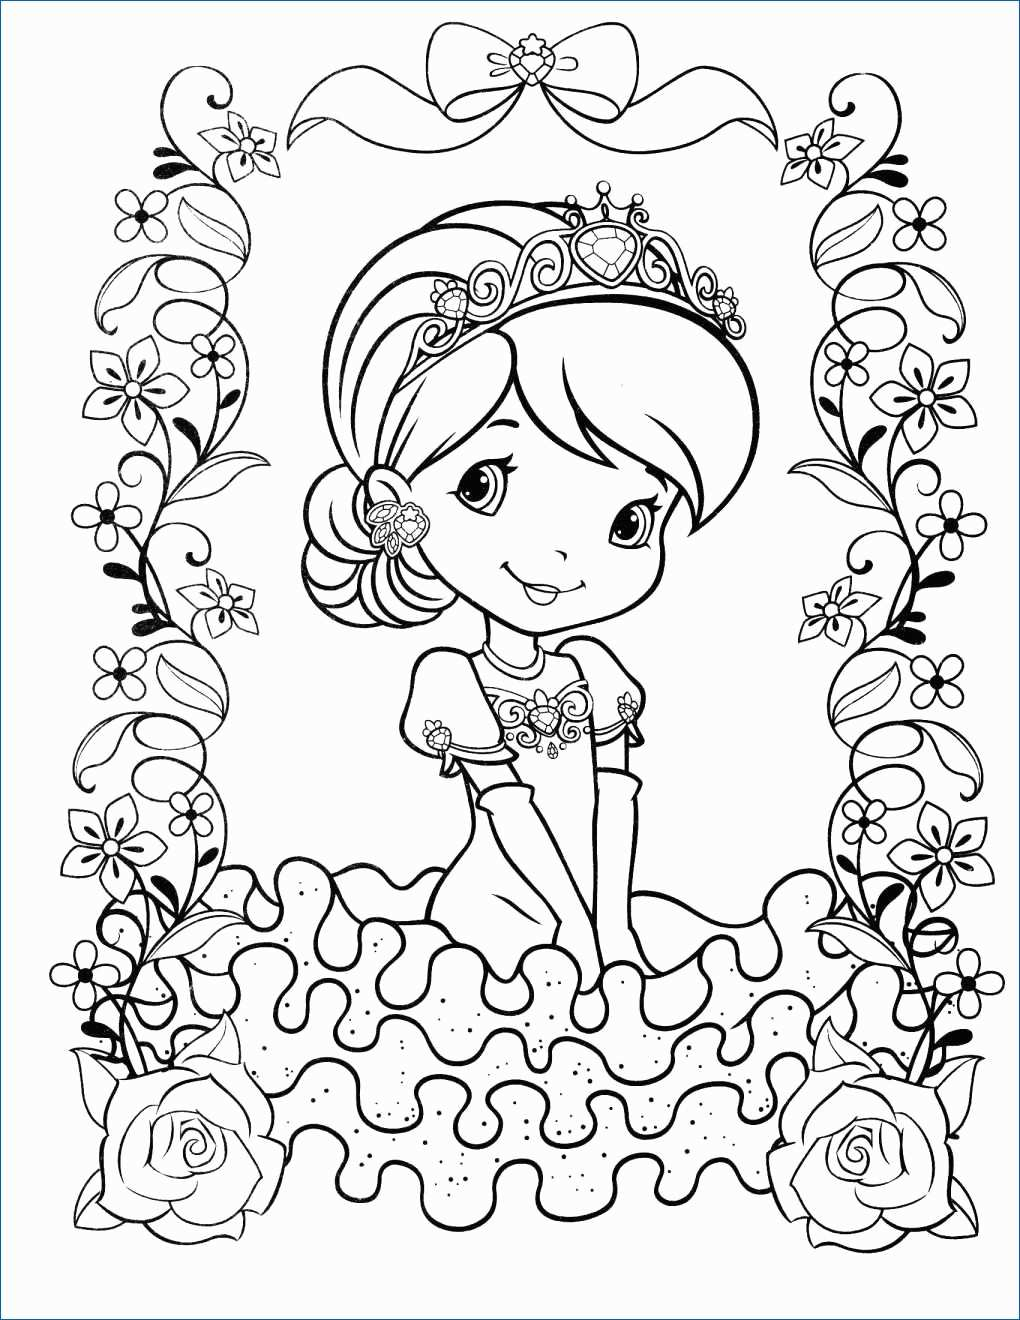 Mayflower Coloring Page Mayflower Coloring Page Cute Dltk Printable Christmas Coloring Pages